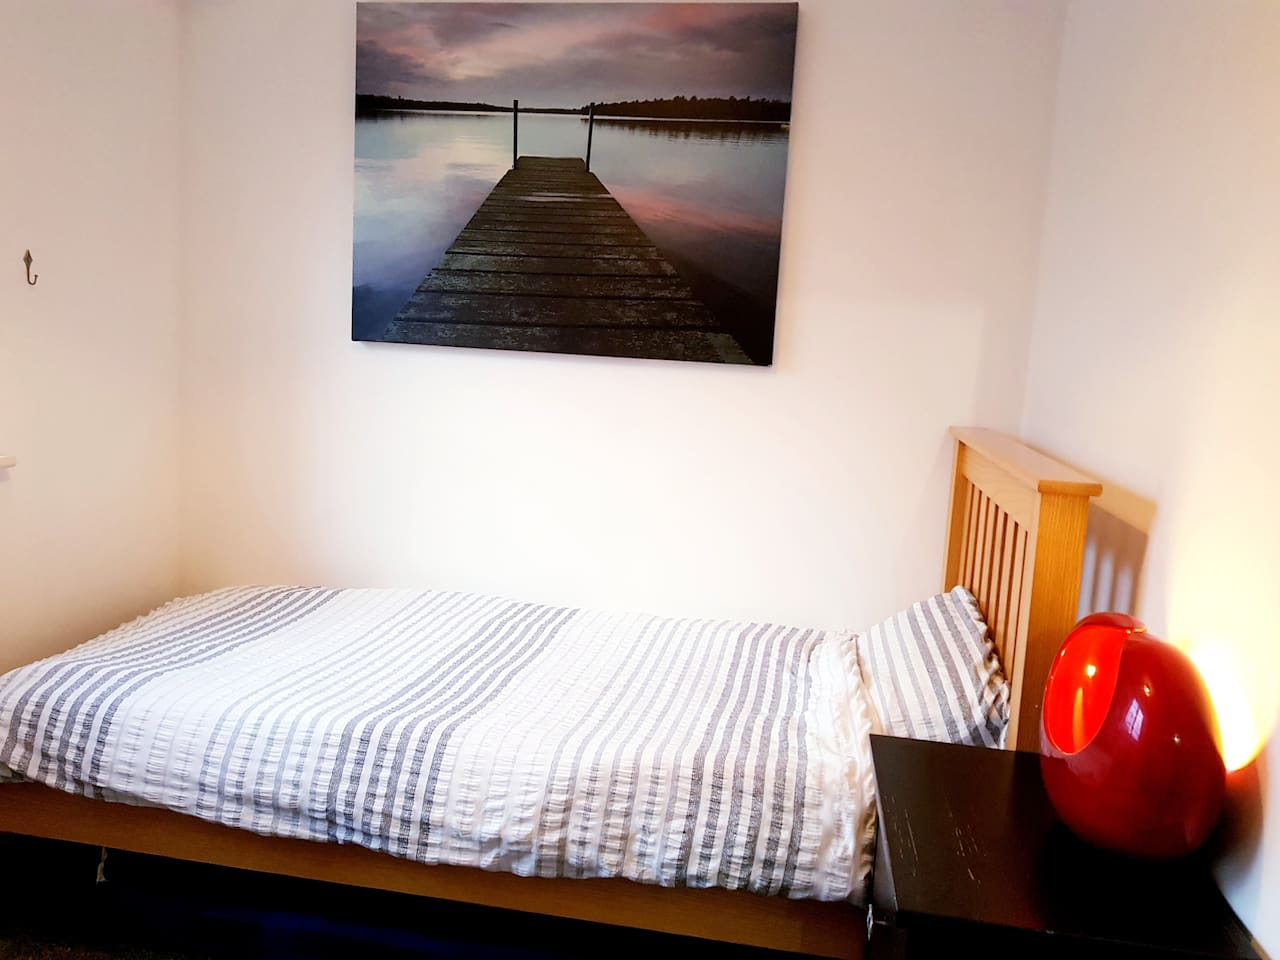 Spacious single bed room that can be reconfigured using the mattress under the bed to sleep two people. free Wi/-Fi, plenty of storage space. nice desk with PC monitor (no speakers) to connect your laptop to for working or watching online media